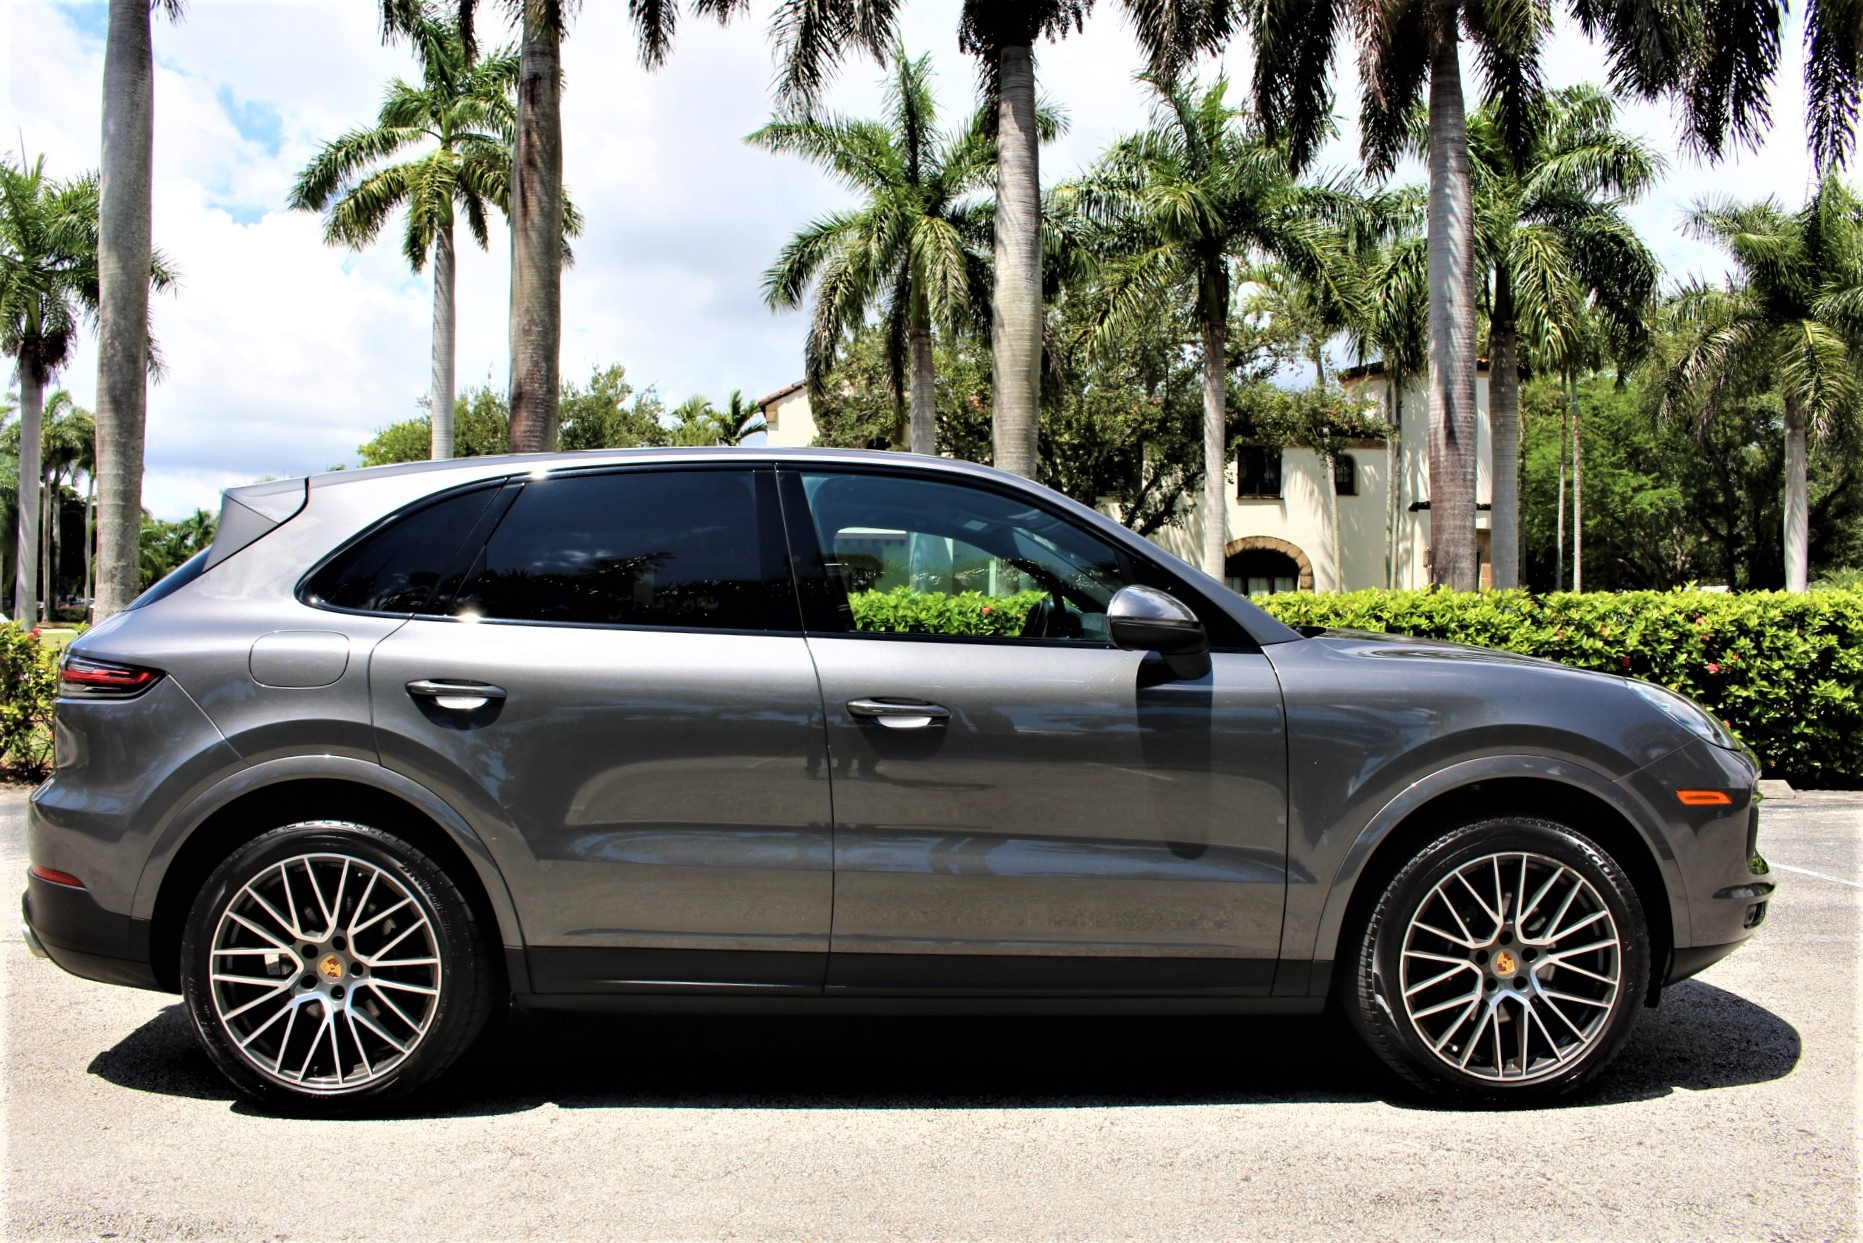 Used 2019 Porsche Cayenne for sale Sold at The Gables Sports Cars in Miami FL 33146 1